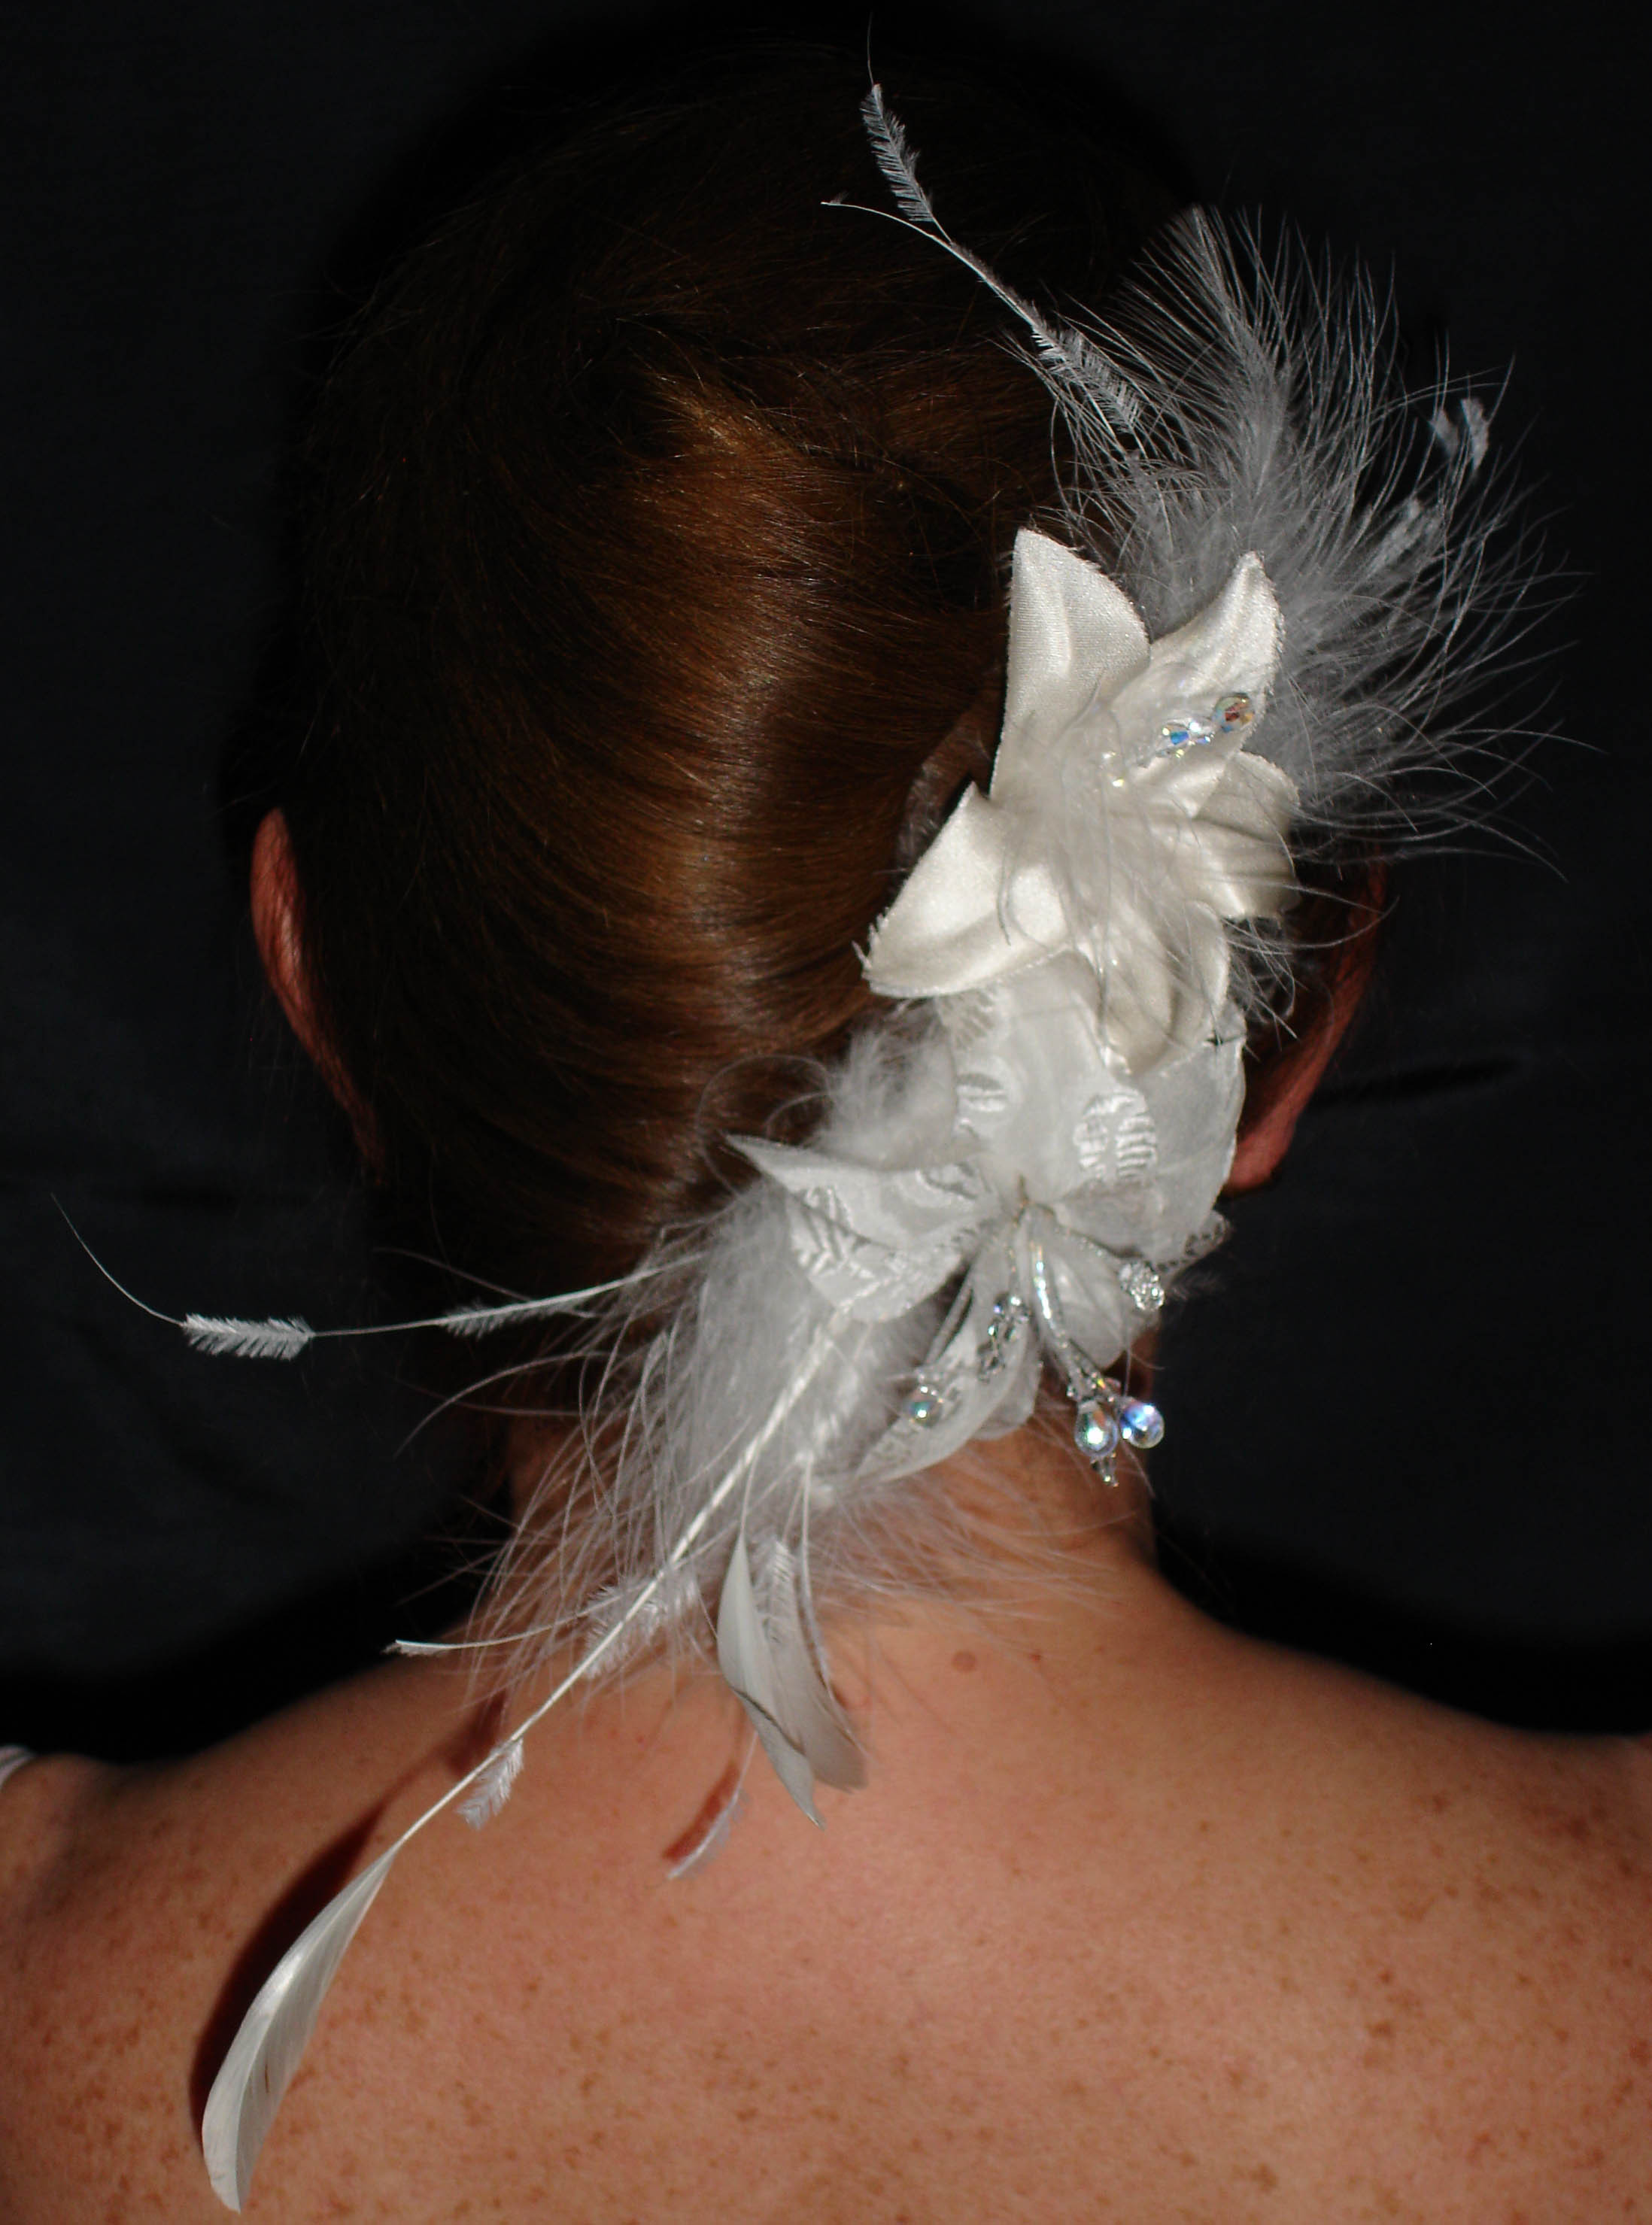 Beauty, Flowers & Decor, Feathers, Comb, Flower, Hair, Bridal, Headpiece, llc, Fascinator, Silk, Ornament, Artistic veil design studio